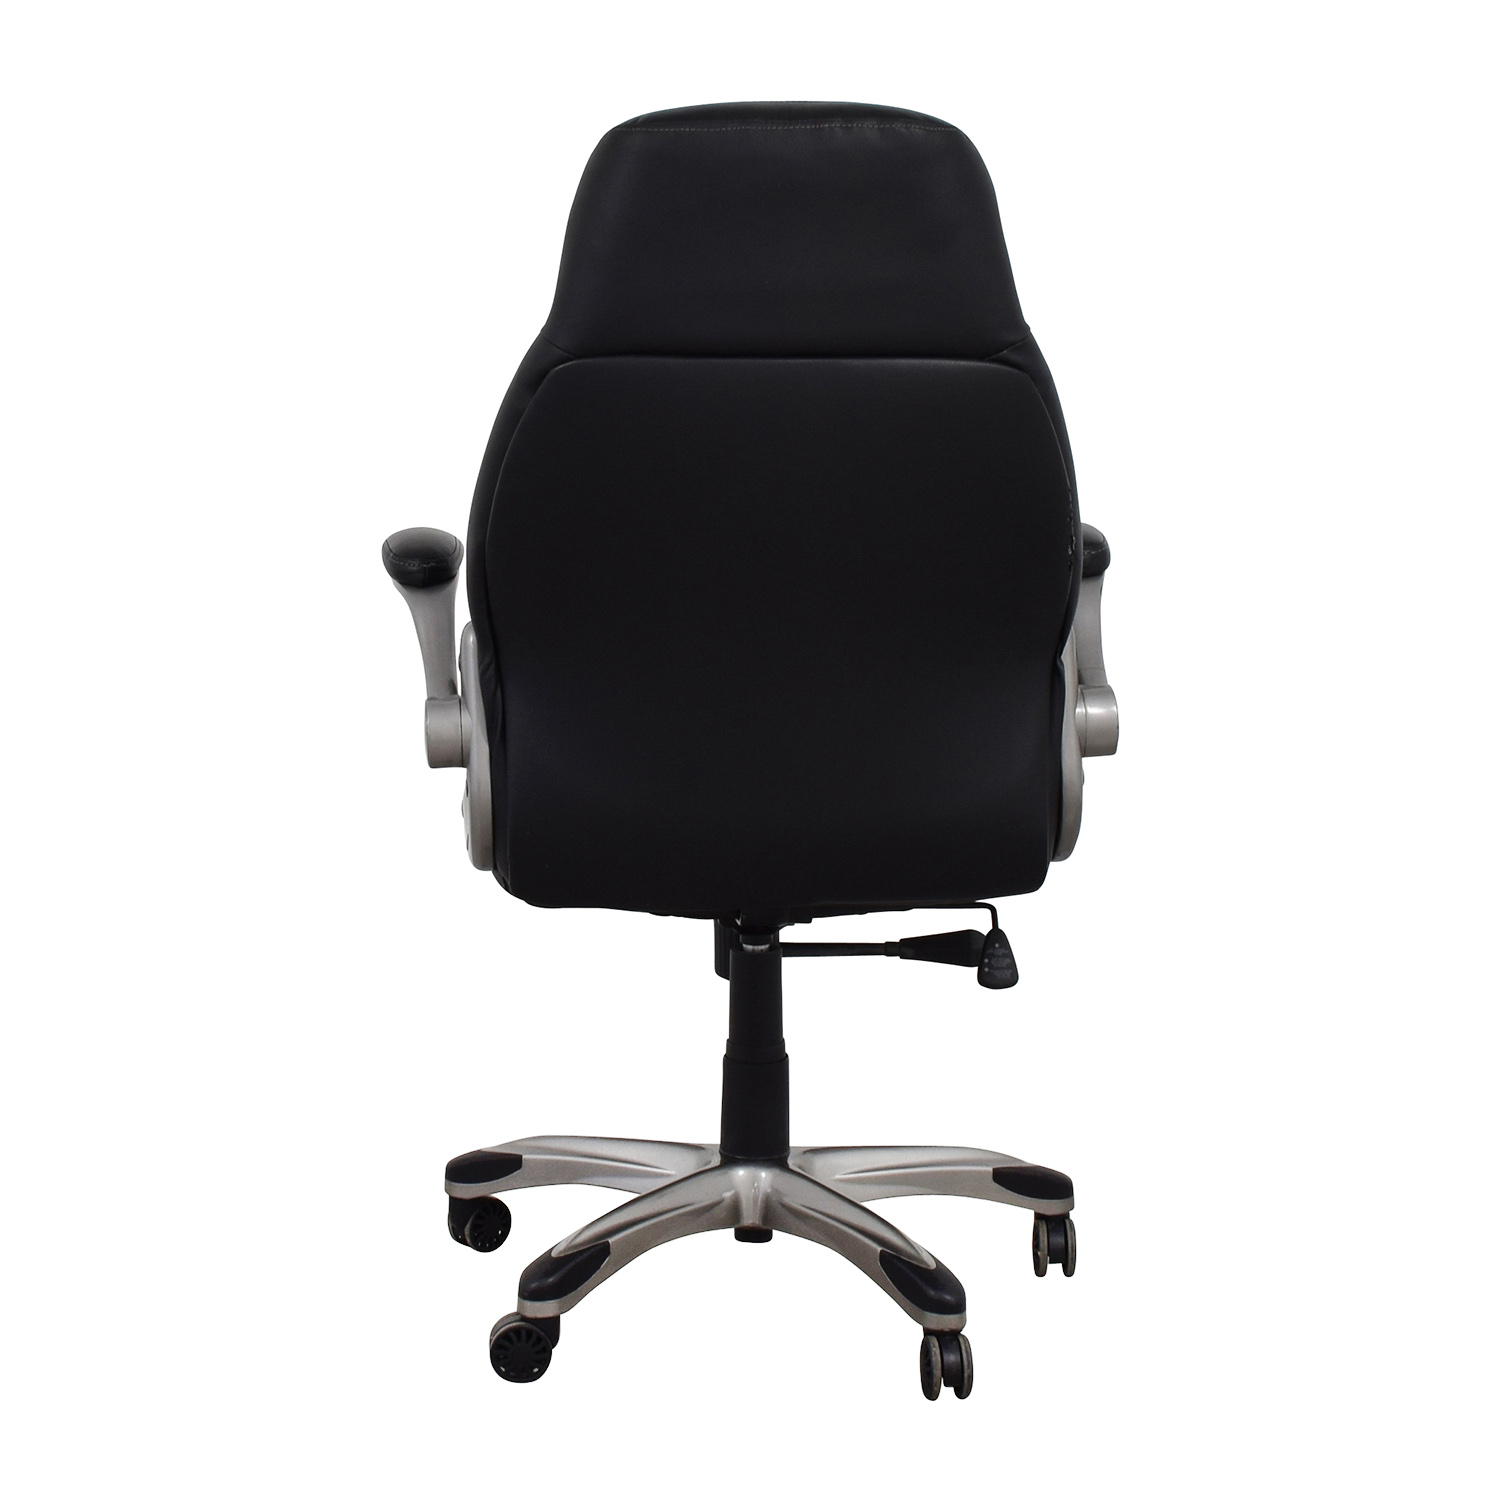 64 Off Staples Staples Torrent High Back Executive Chair In Black